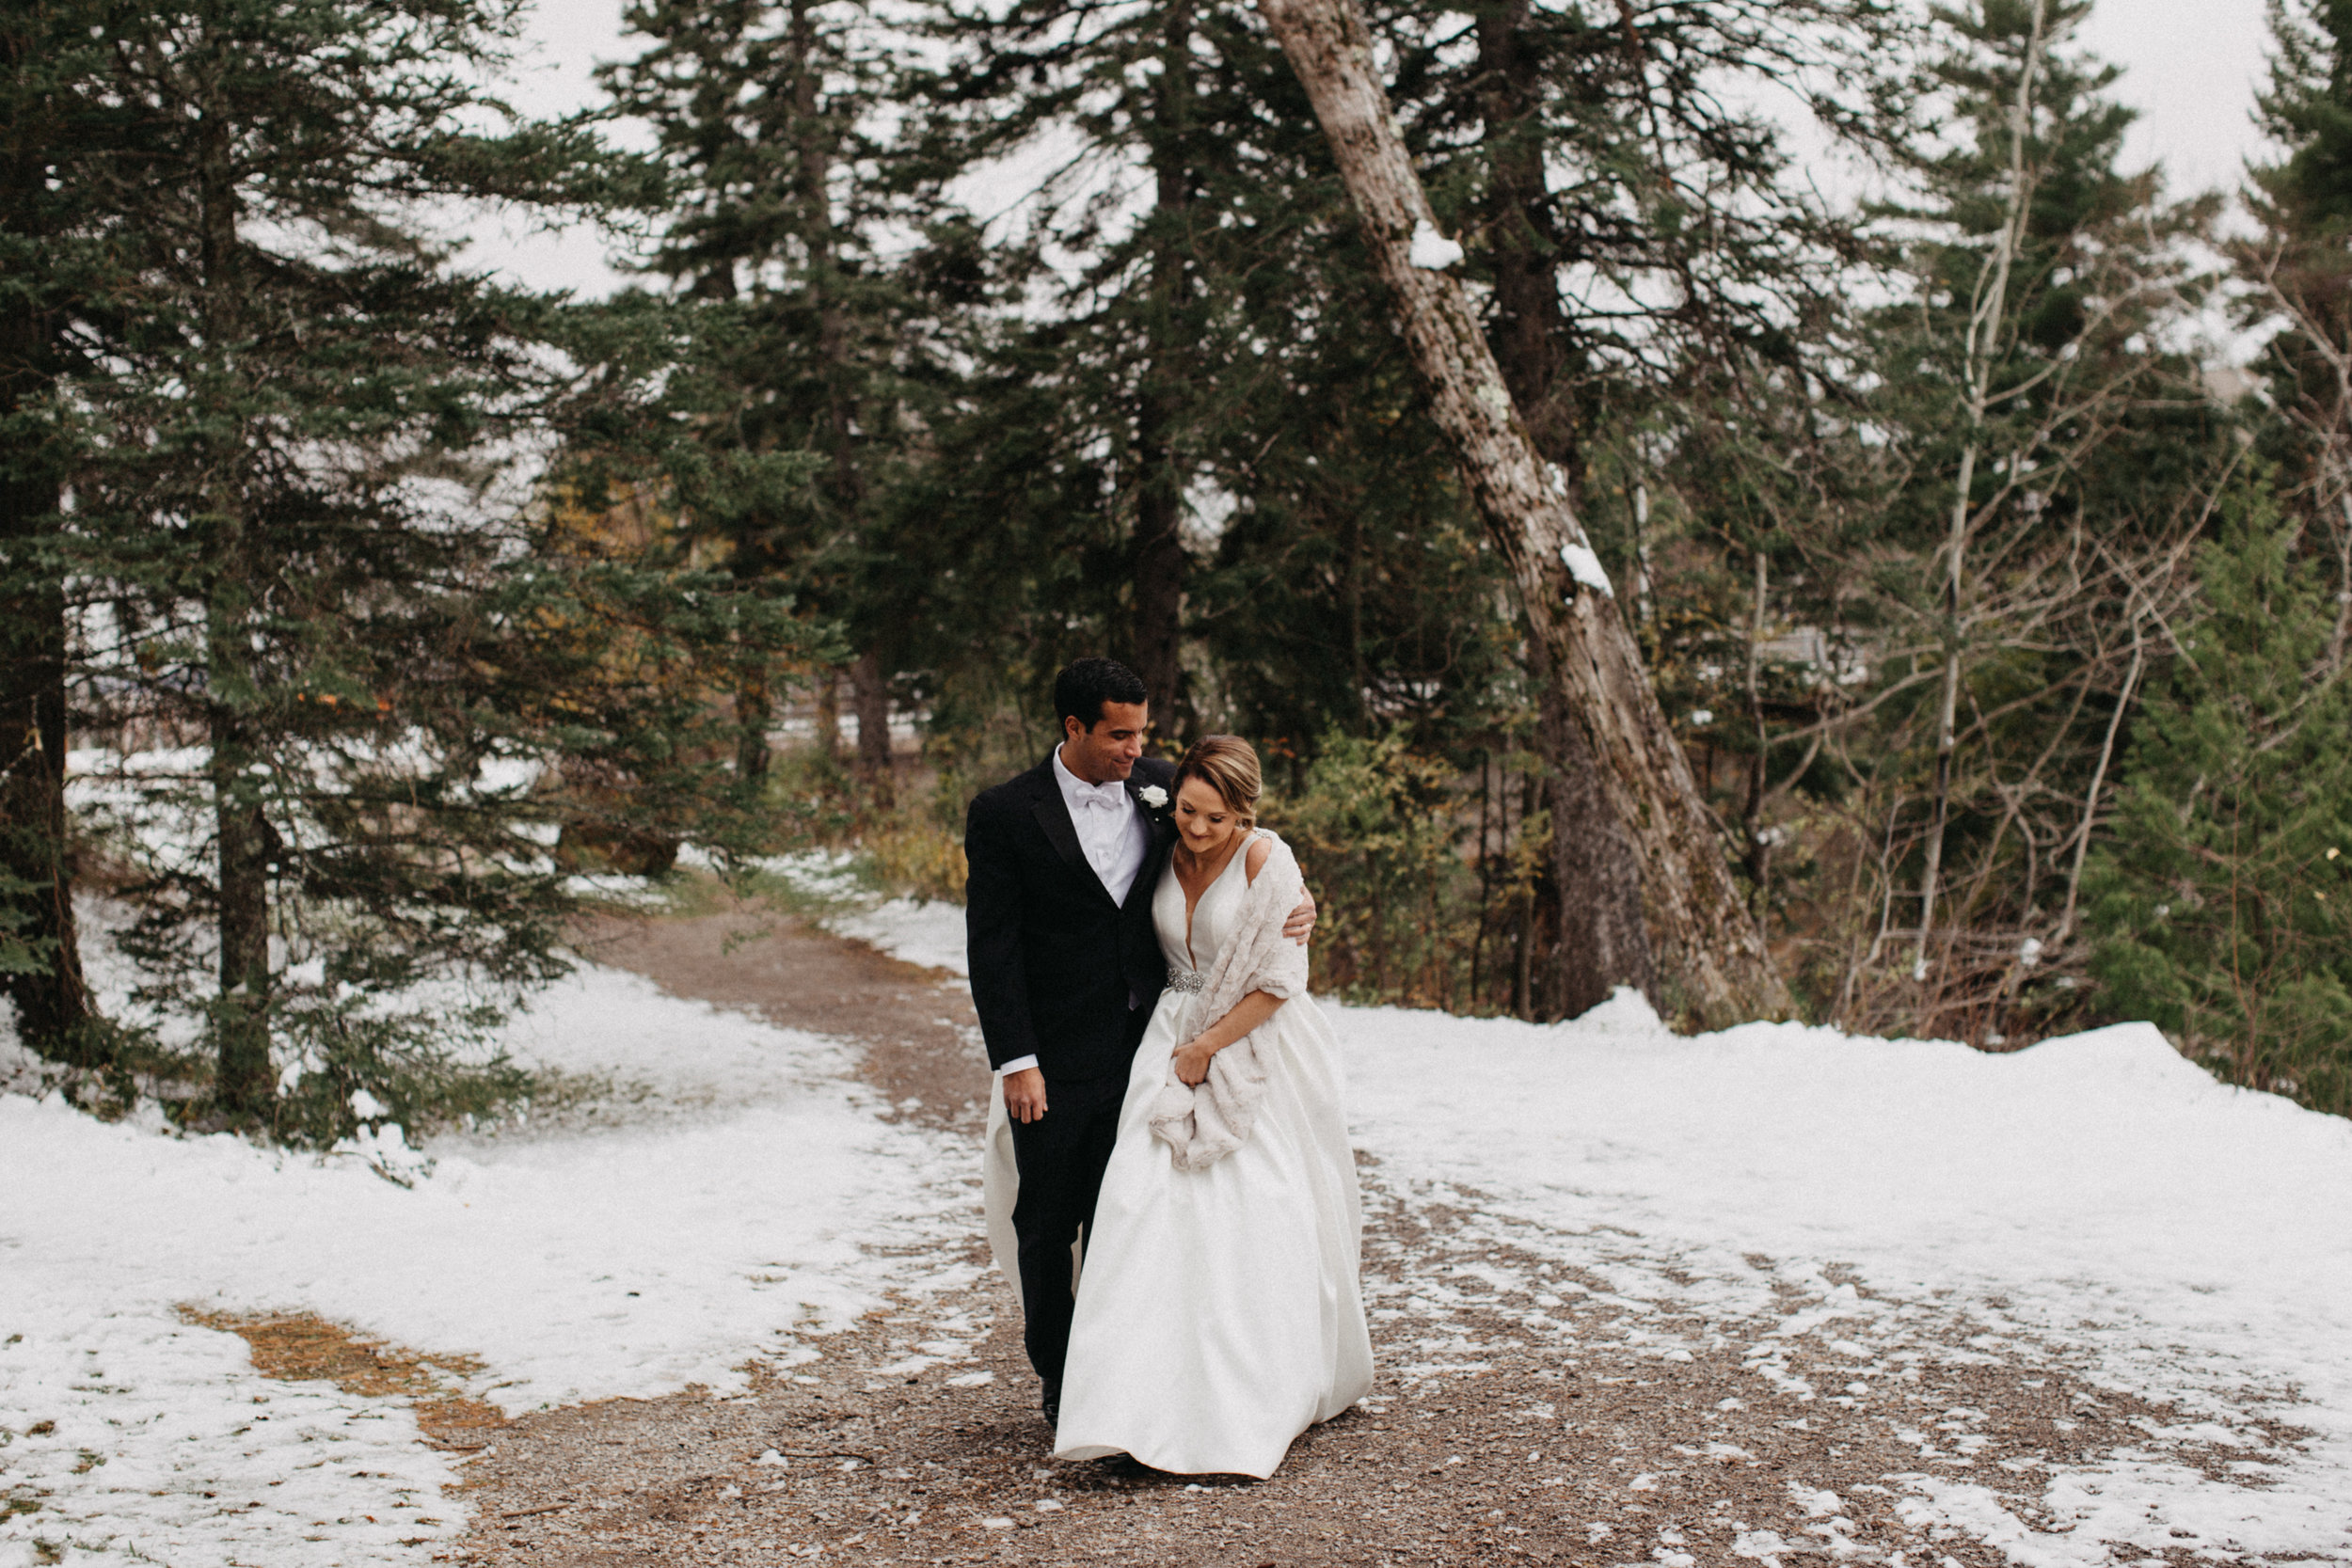 Romantic winter wedding in Duluth, MN